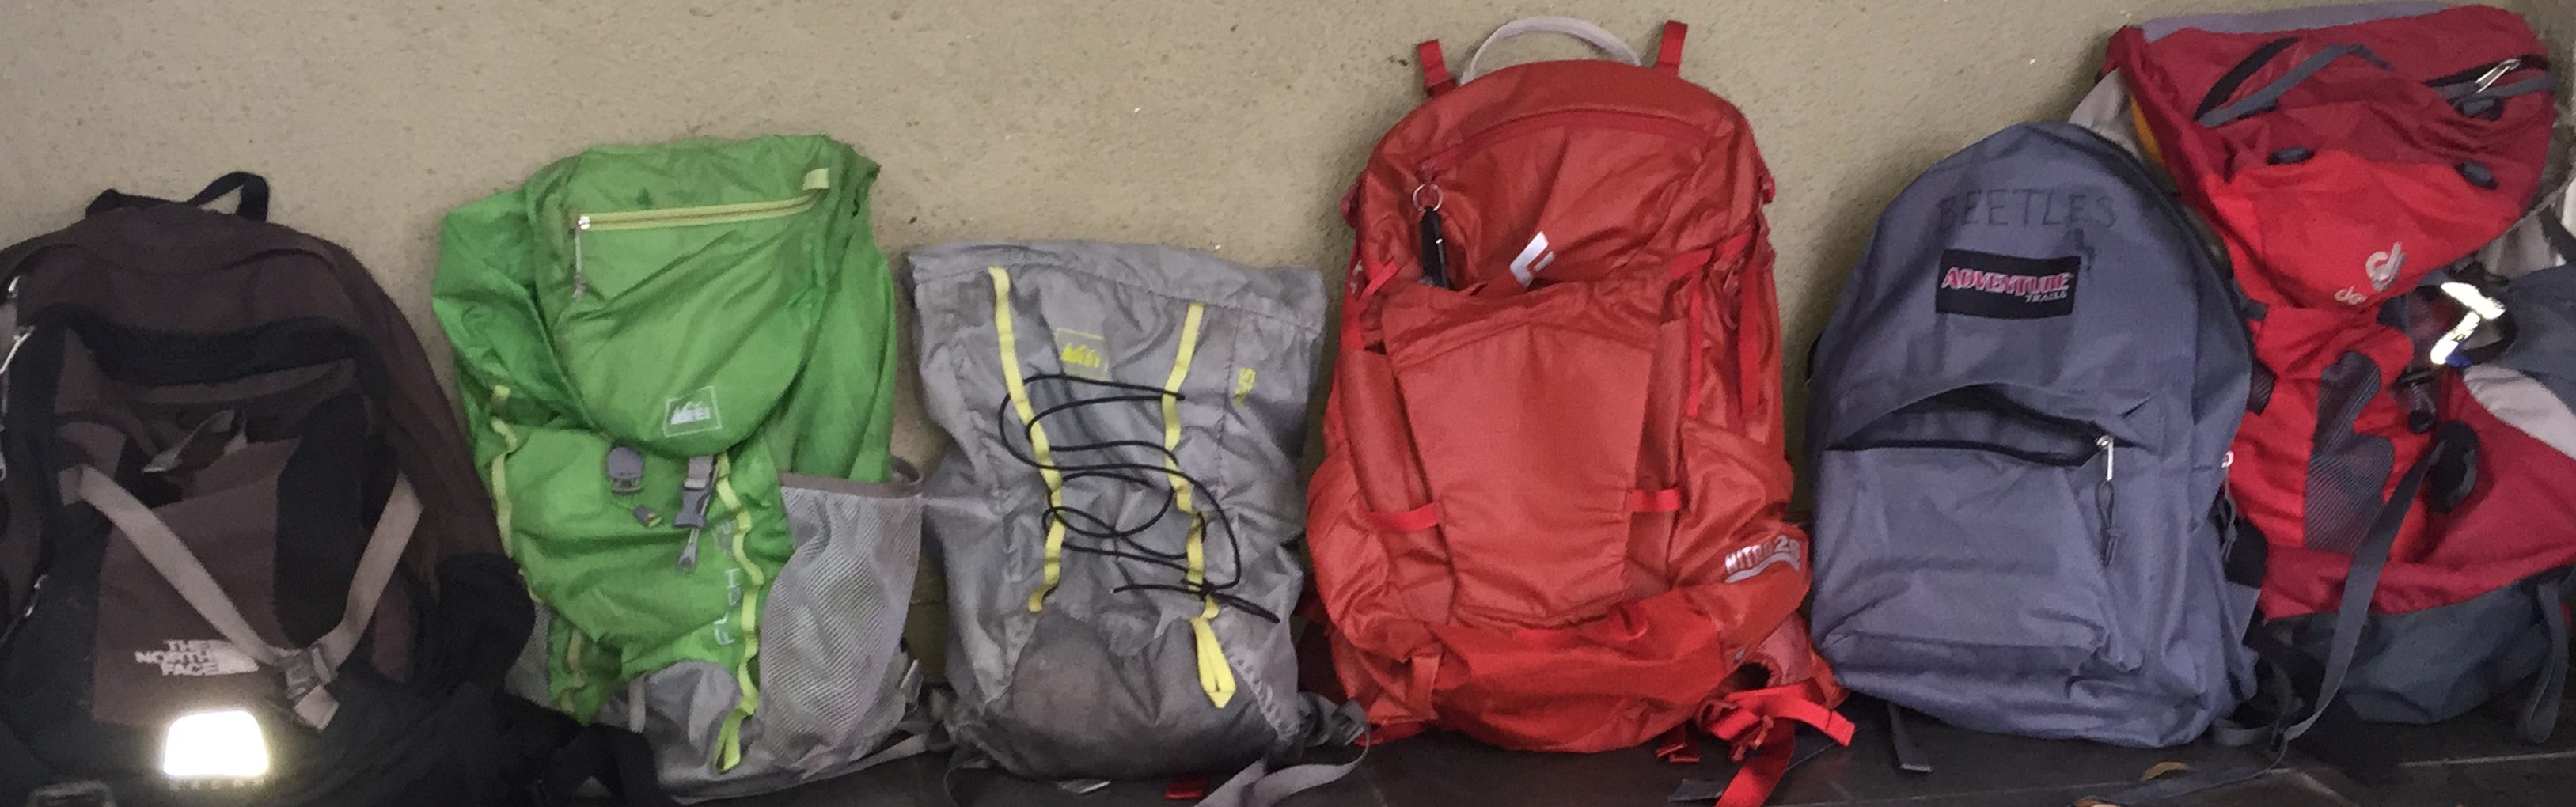 backpack line 5